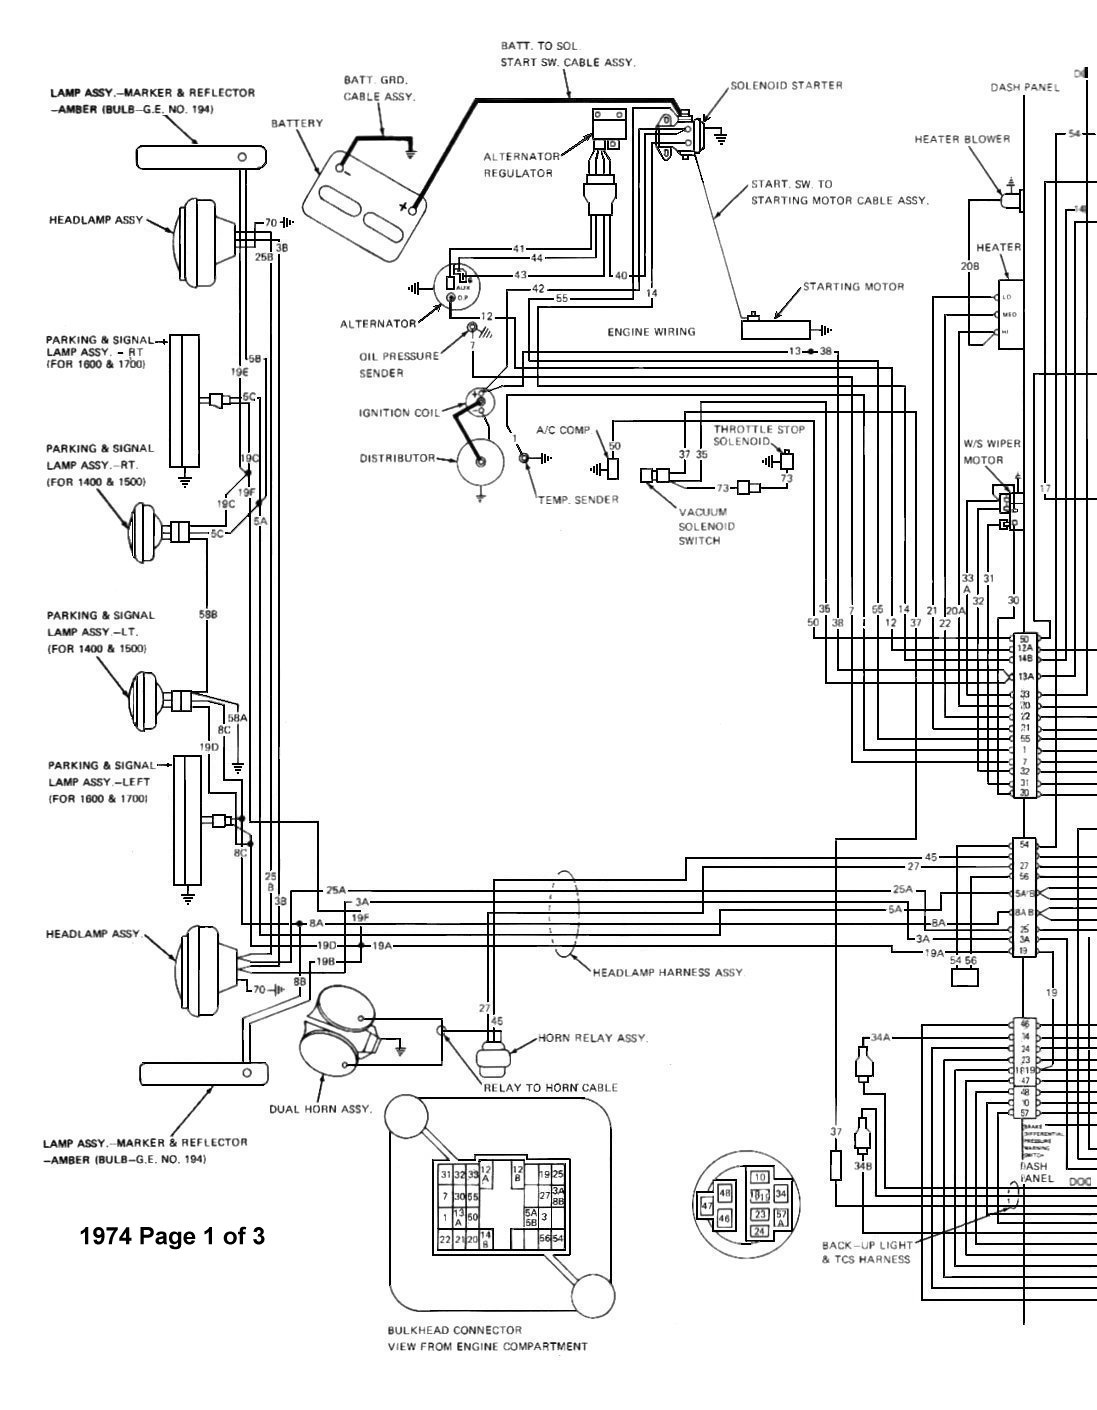 [SCHEMATICS_48IS]  Tom 'Oljeep' Collins FSJ Wiring Page | Wiring Diagram For 87 Grand Wagoneer |  | Oljeep